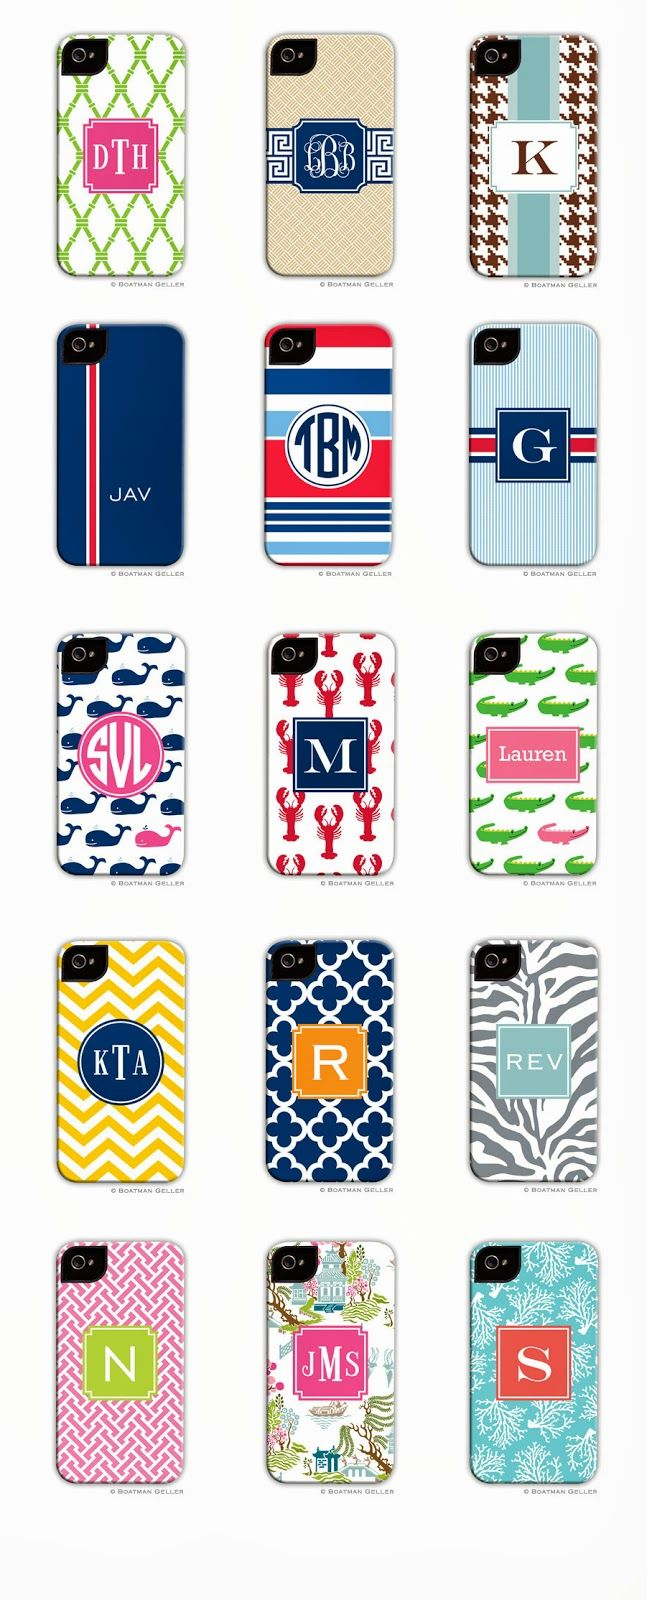 Buggy Designs Blog: Monogrammed Apple 5S cases are here from Boatman Geller! #Gifts #Monograms #iphone